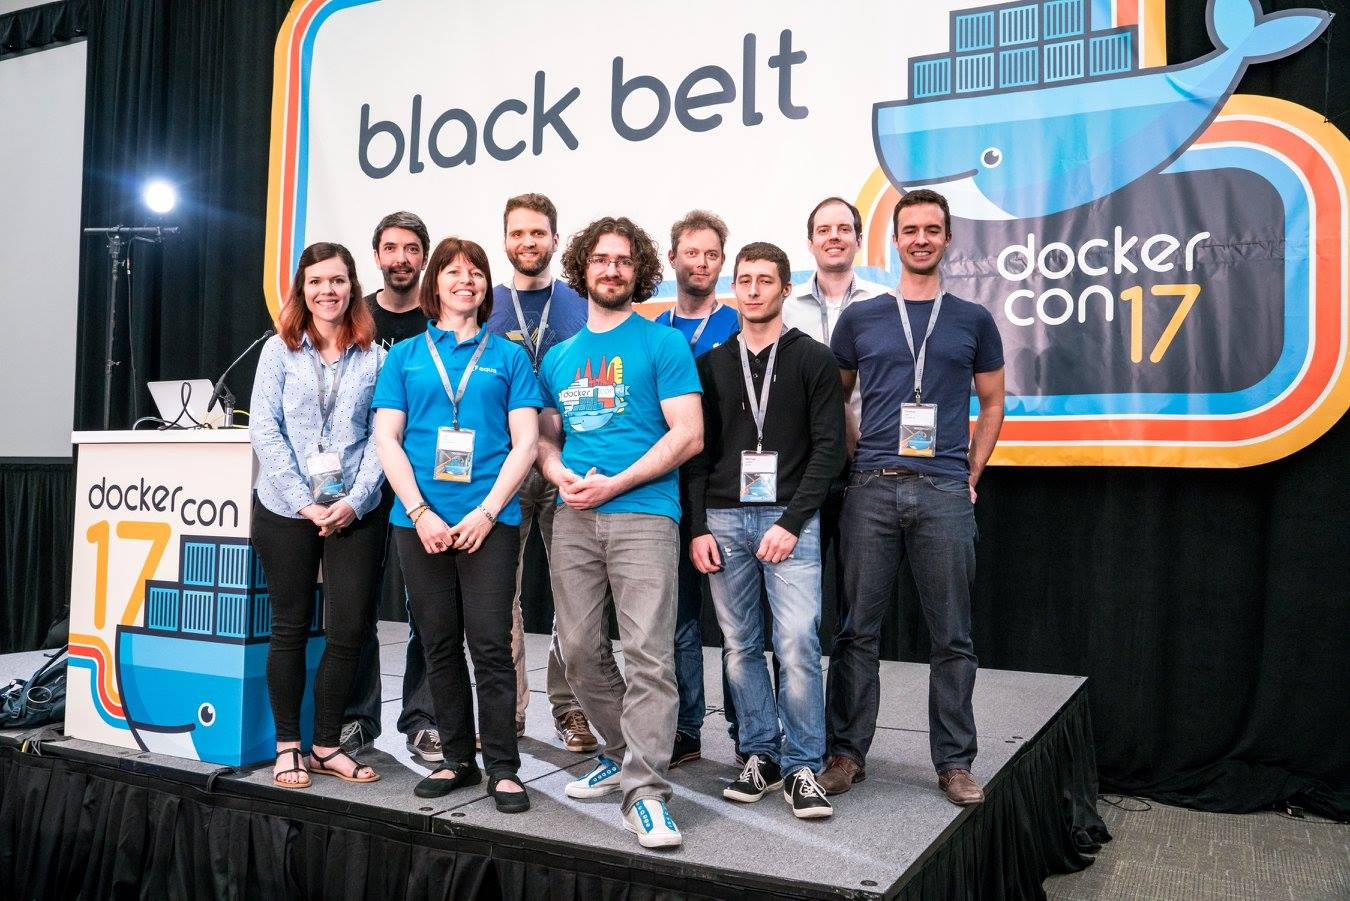 Group picture with the Black Belt Track speaker at DockerCon 2017 in Austin.